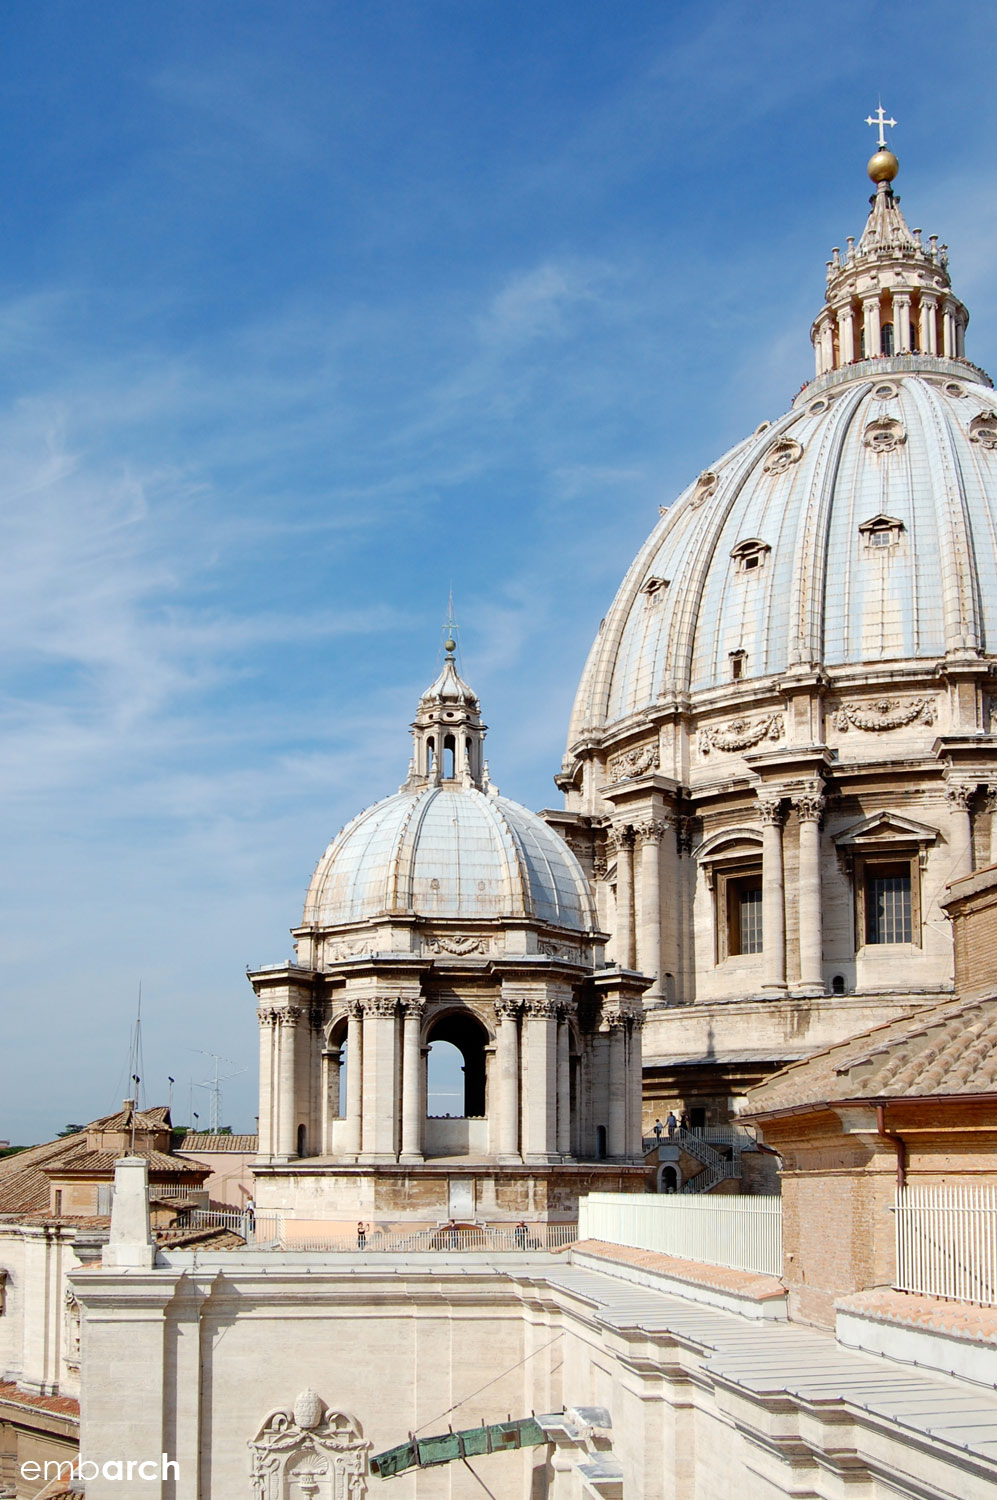 St. Peter's Basilica - exterior domes